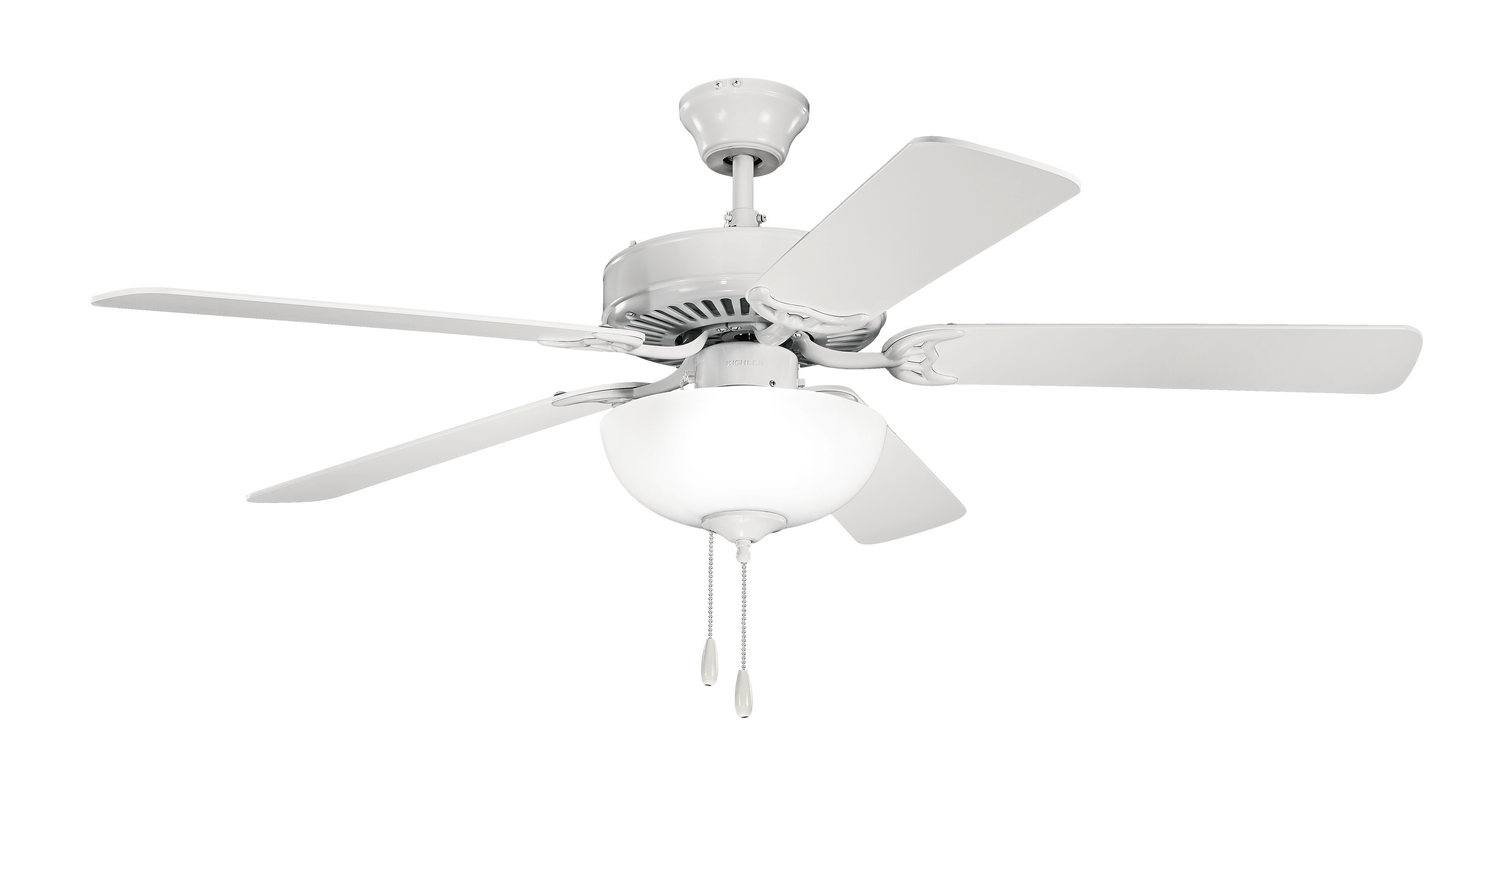 52 inchCeiling Fan from the Basics collection by Kichler 403WH